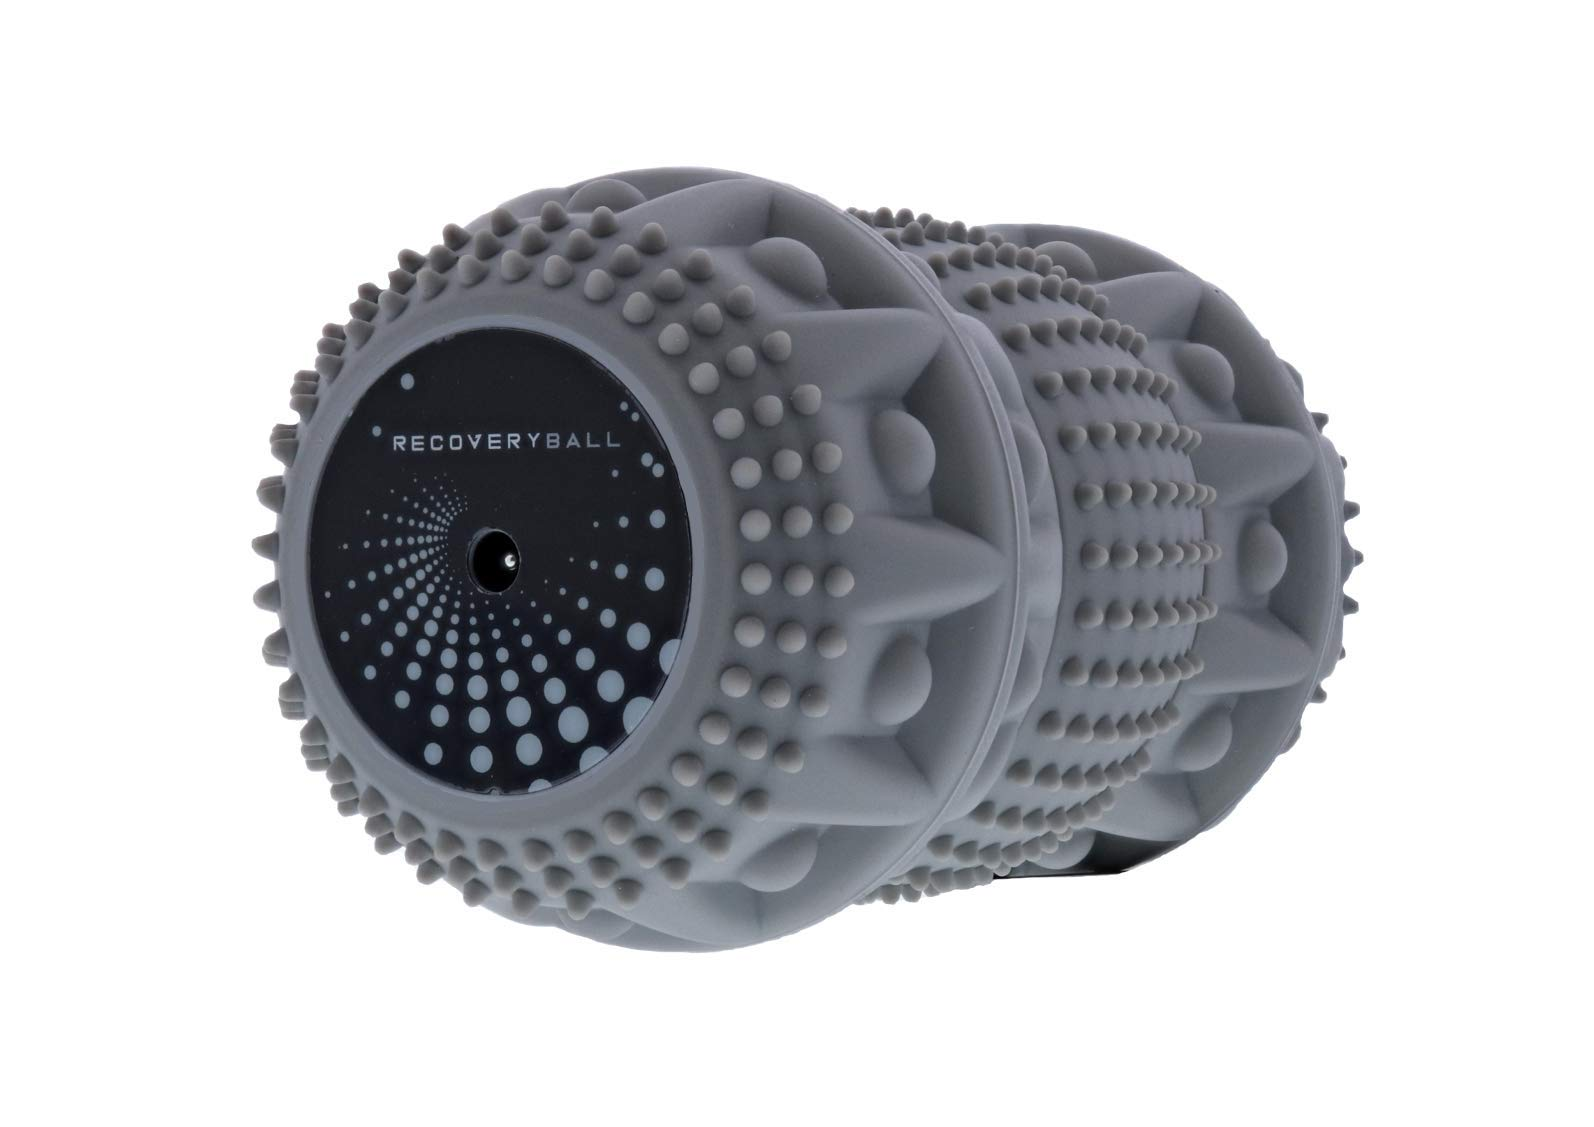 RecoveryBall Vibrating Peanut Massage Ball | 3 Speeds, Twists in 3 Ways | Perfect Therapy Ball Roller for Sore Muscles | Massage Balls Deep Tissue Massage to Relive Tension in Back, Shoulders, Legs